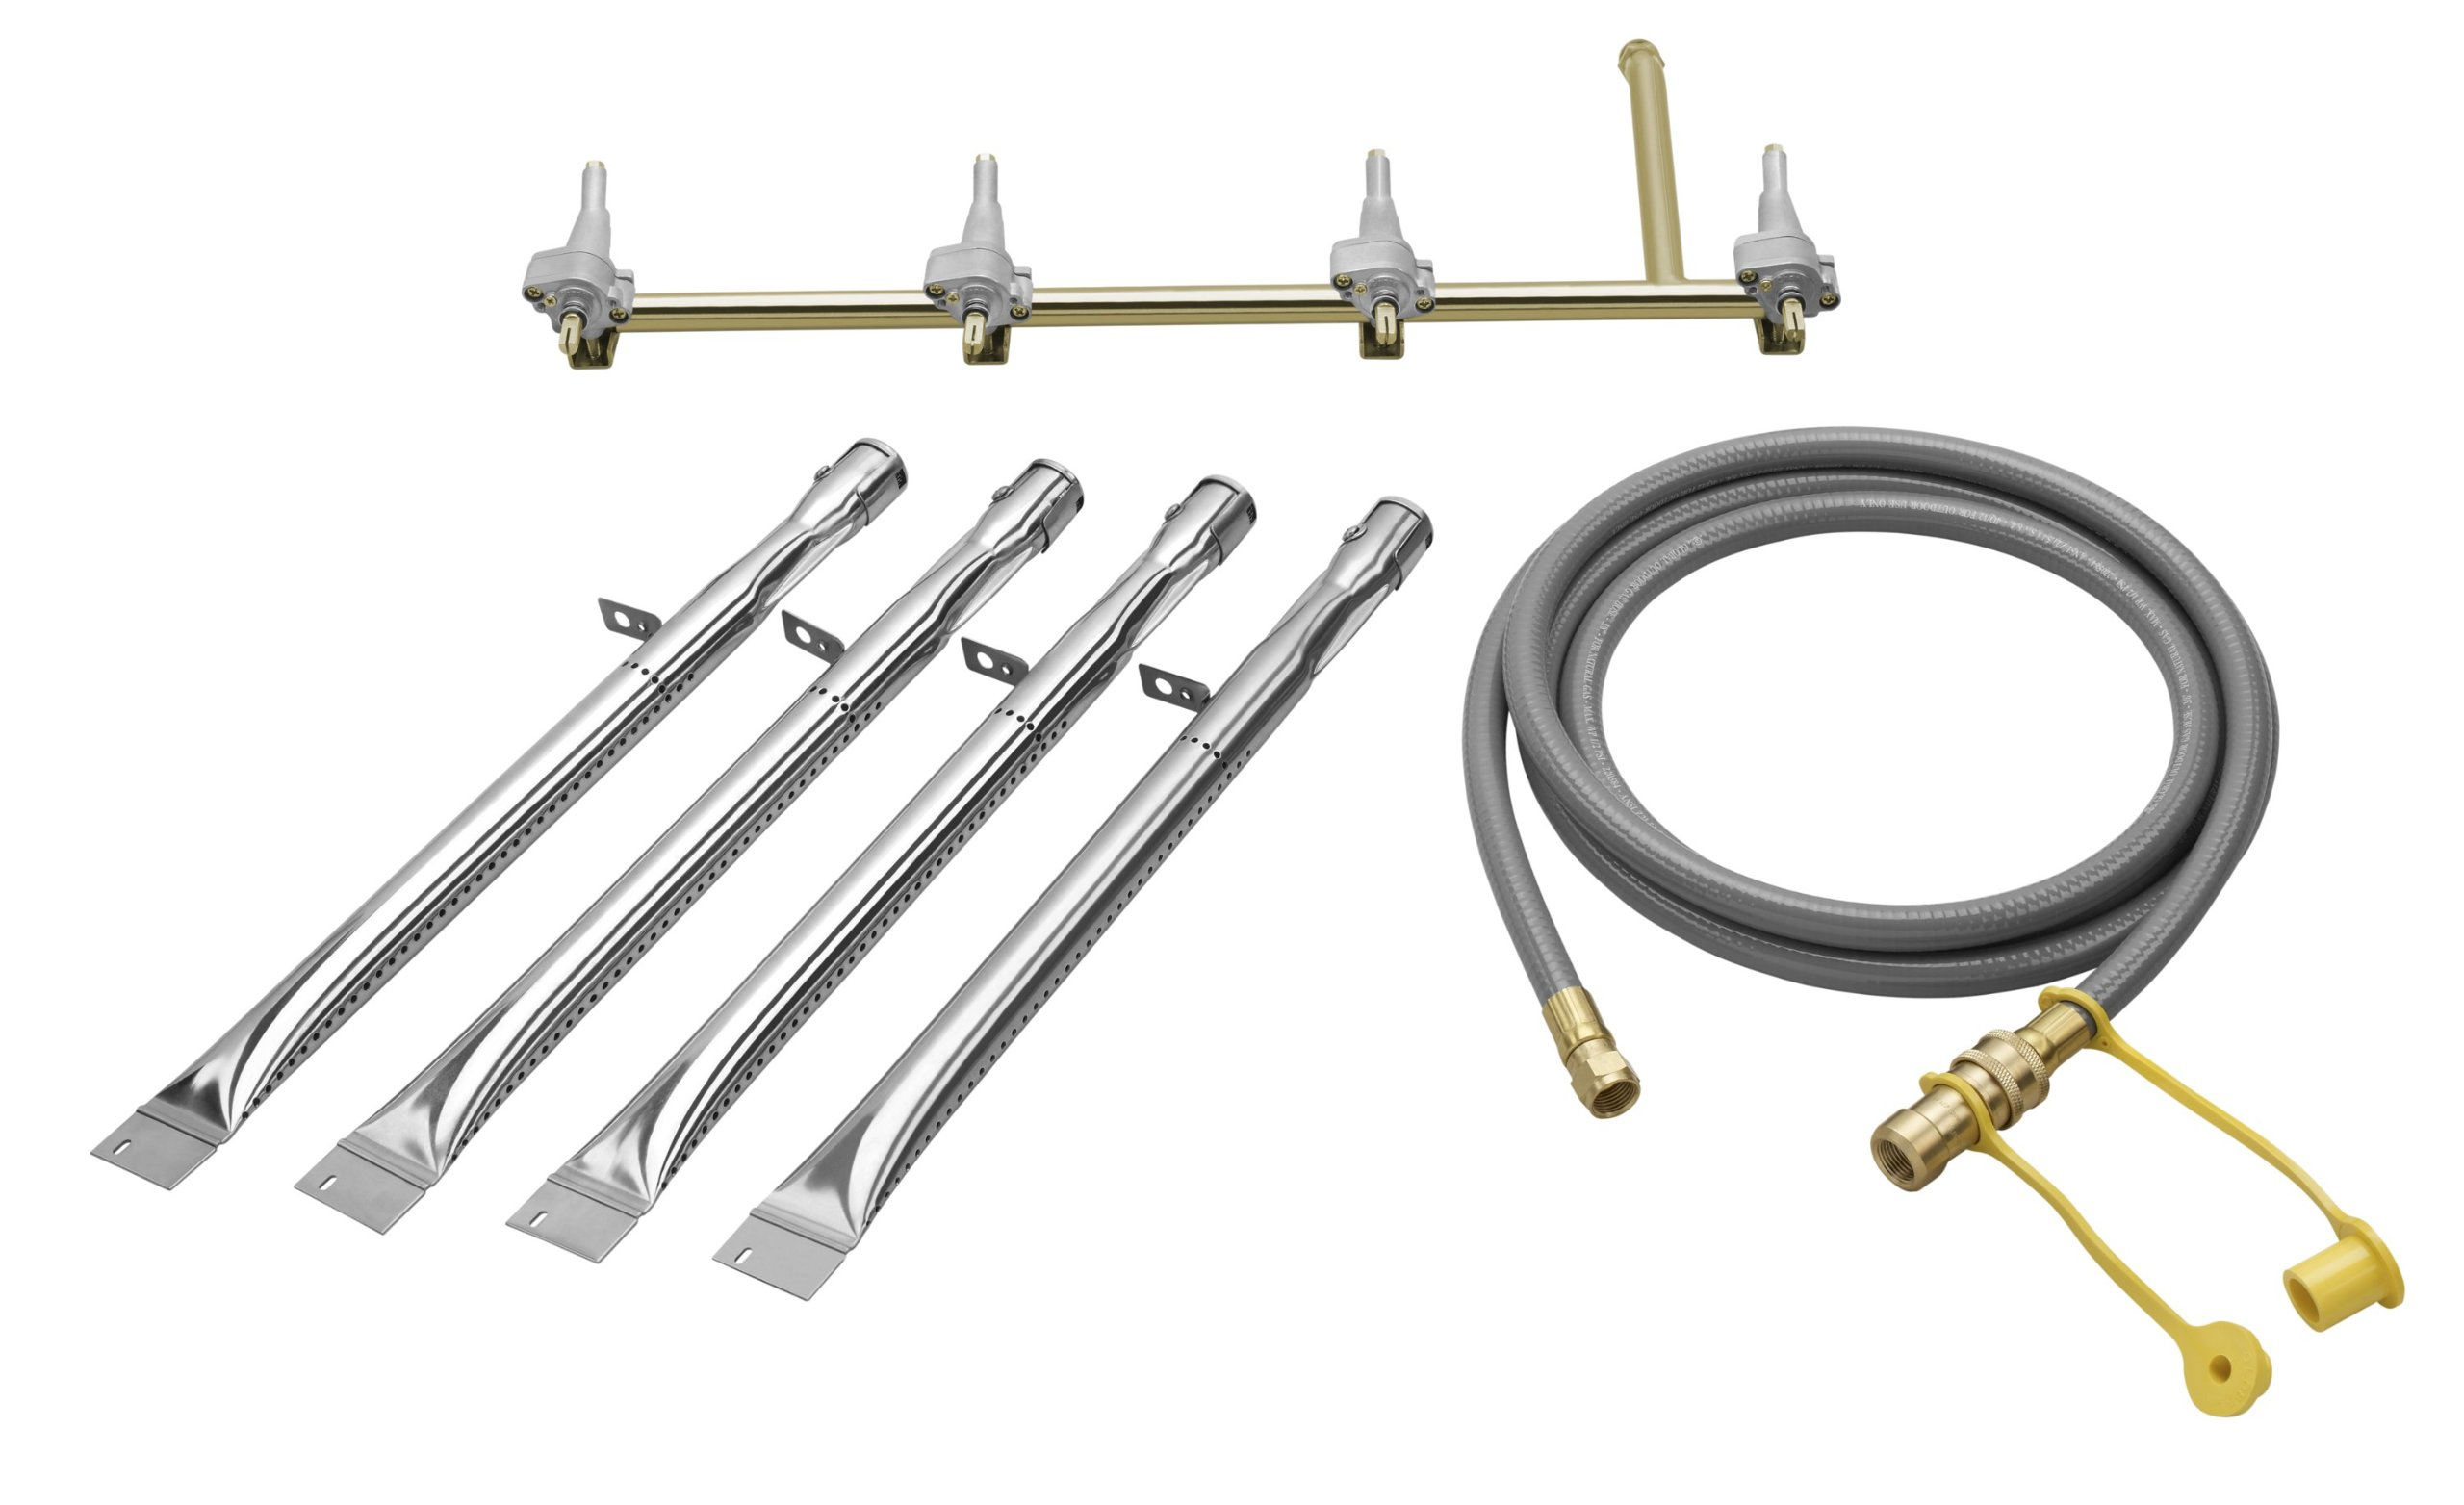 Stok Grills SGA7000 Natural Gas Conversion Kit for Quattro Grills by SToK